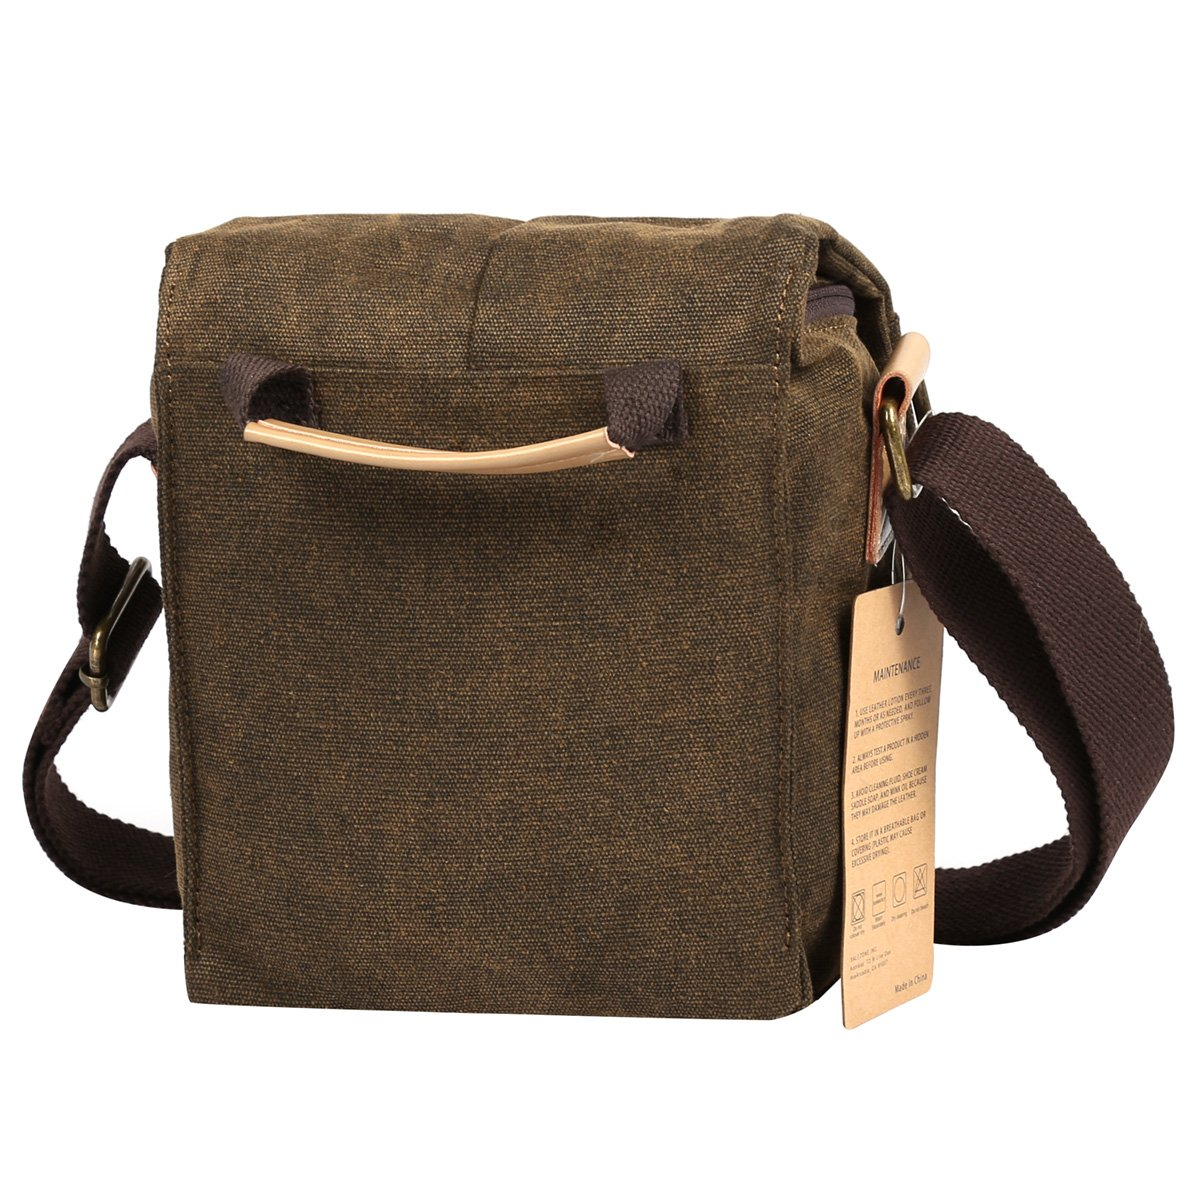 S-ZONE Vintage Waterproof Canvas Leather Trim DSLR SLR Shockproof Camera Shoulder Messenger Bag 2